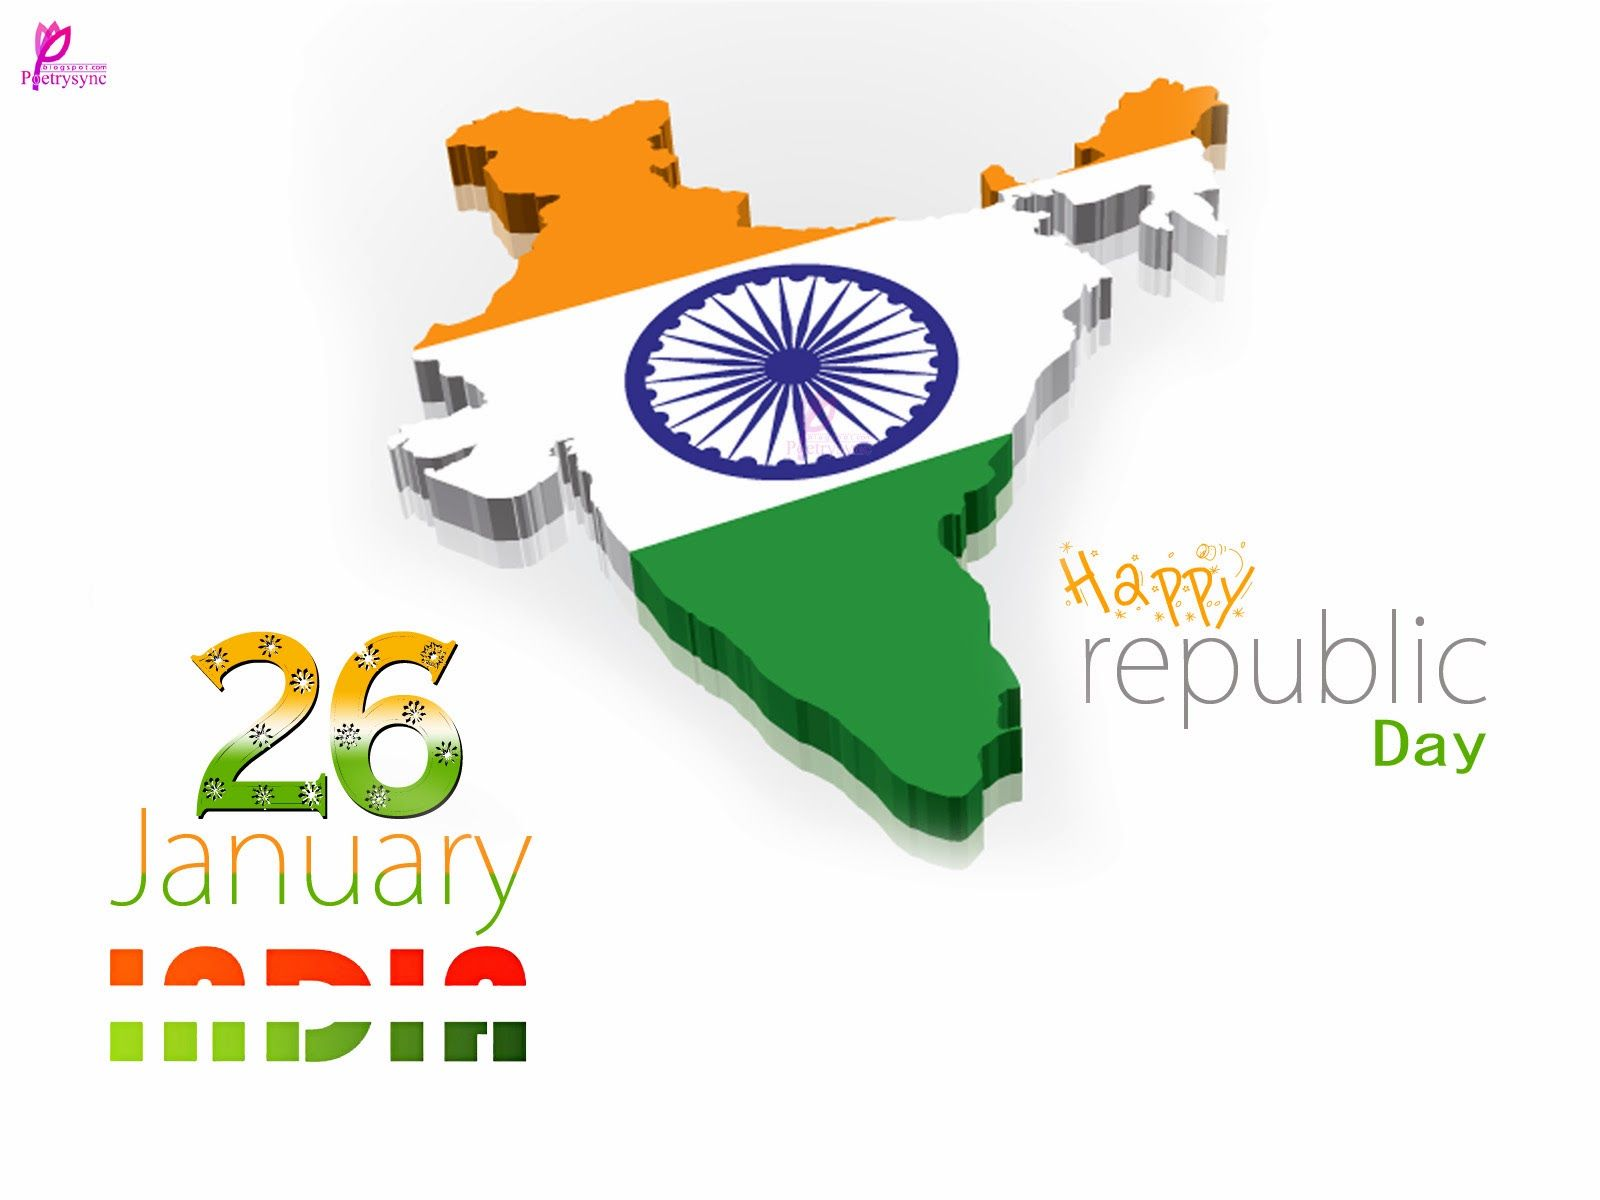 Happy republic day greetings and wishes card wallpaper with image happy republic day greetings and wishes card wallpaper with image republic day indian beautiful wallpaper m4hsunfo